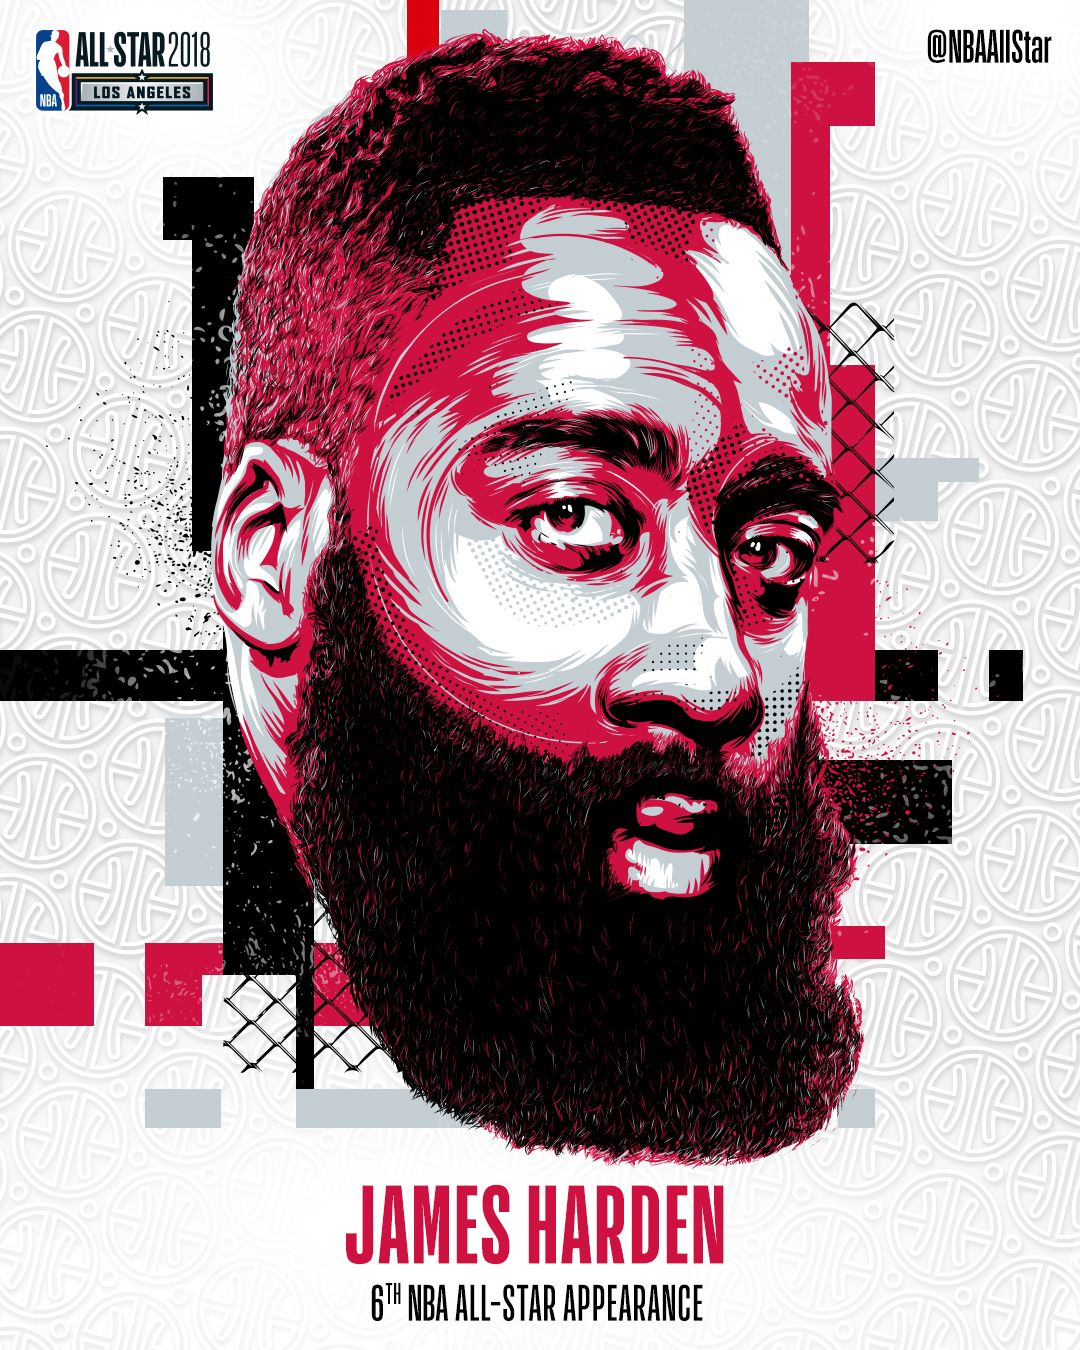 James Harden Basketball Camp: NBA All-Star Game - Starters Announcement On Behance